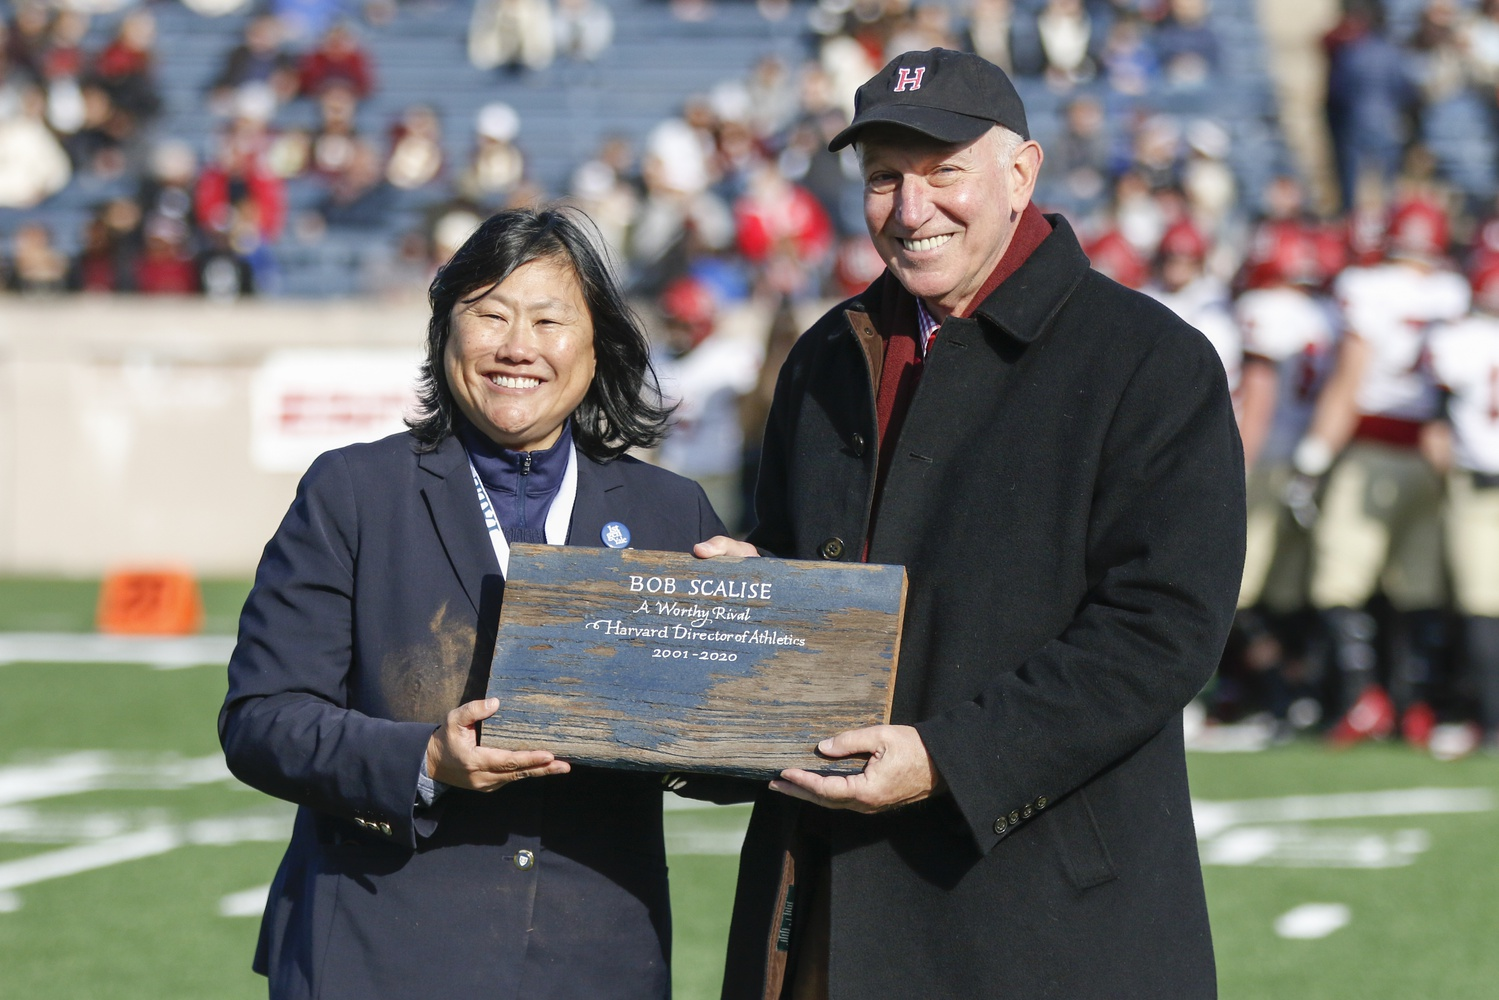 At the 136th rendition of The Game,  Yale's Director of Athletics, Victoria M. Chun, honored her Harvard counterpart, Robert L. Scalise, with a piece of the original Yale Bowl.